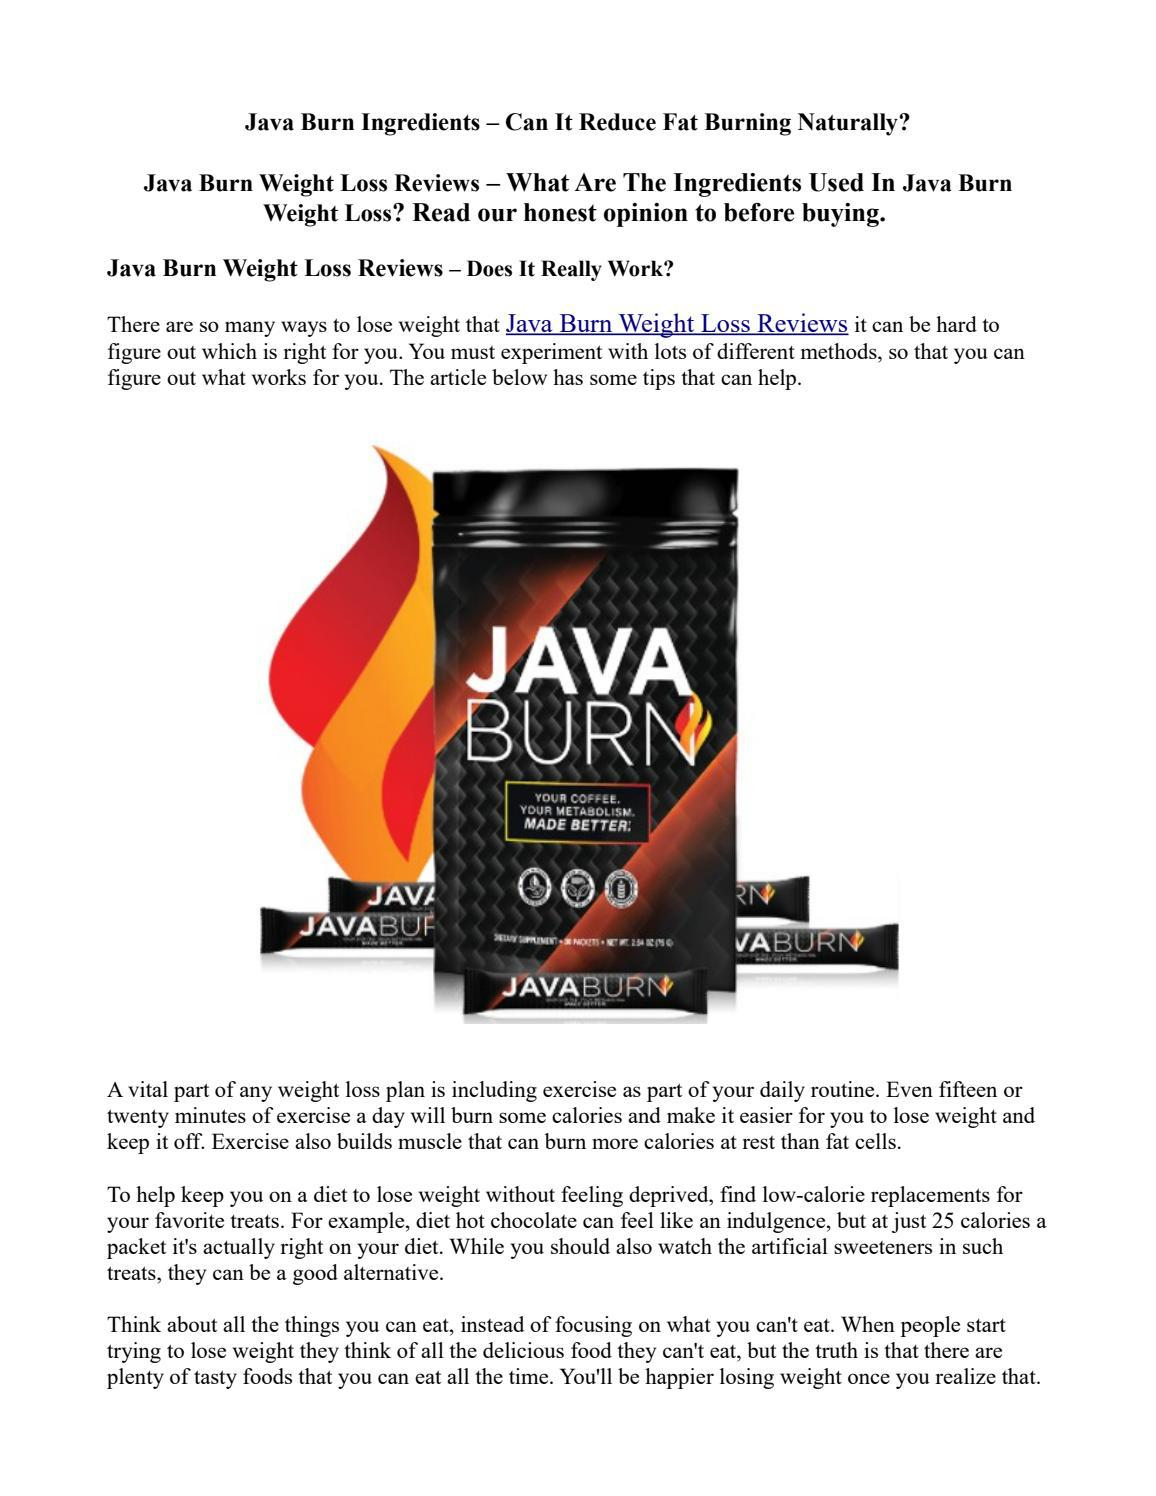 Java Burn Reviews - Is Java Burn powder good for weight loss? - East Bay Times